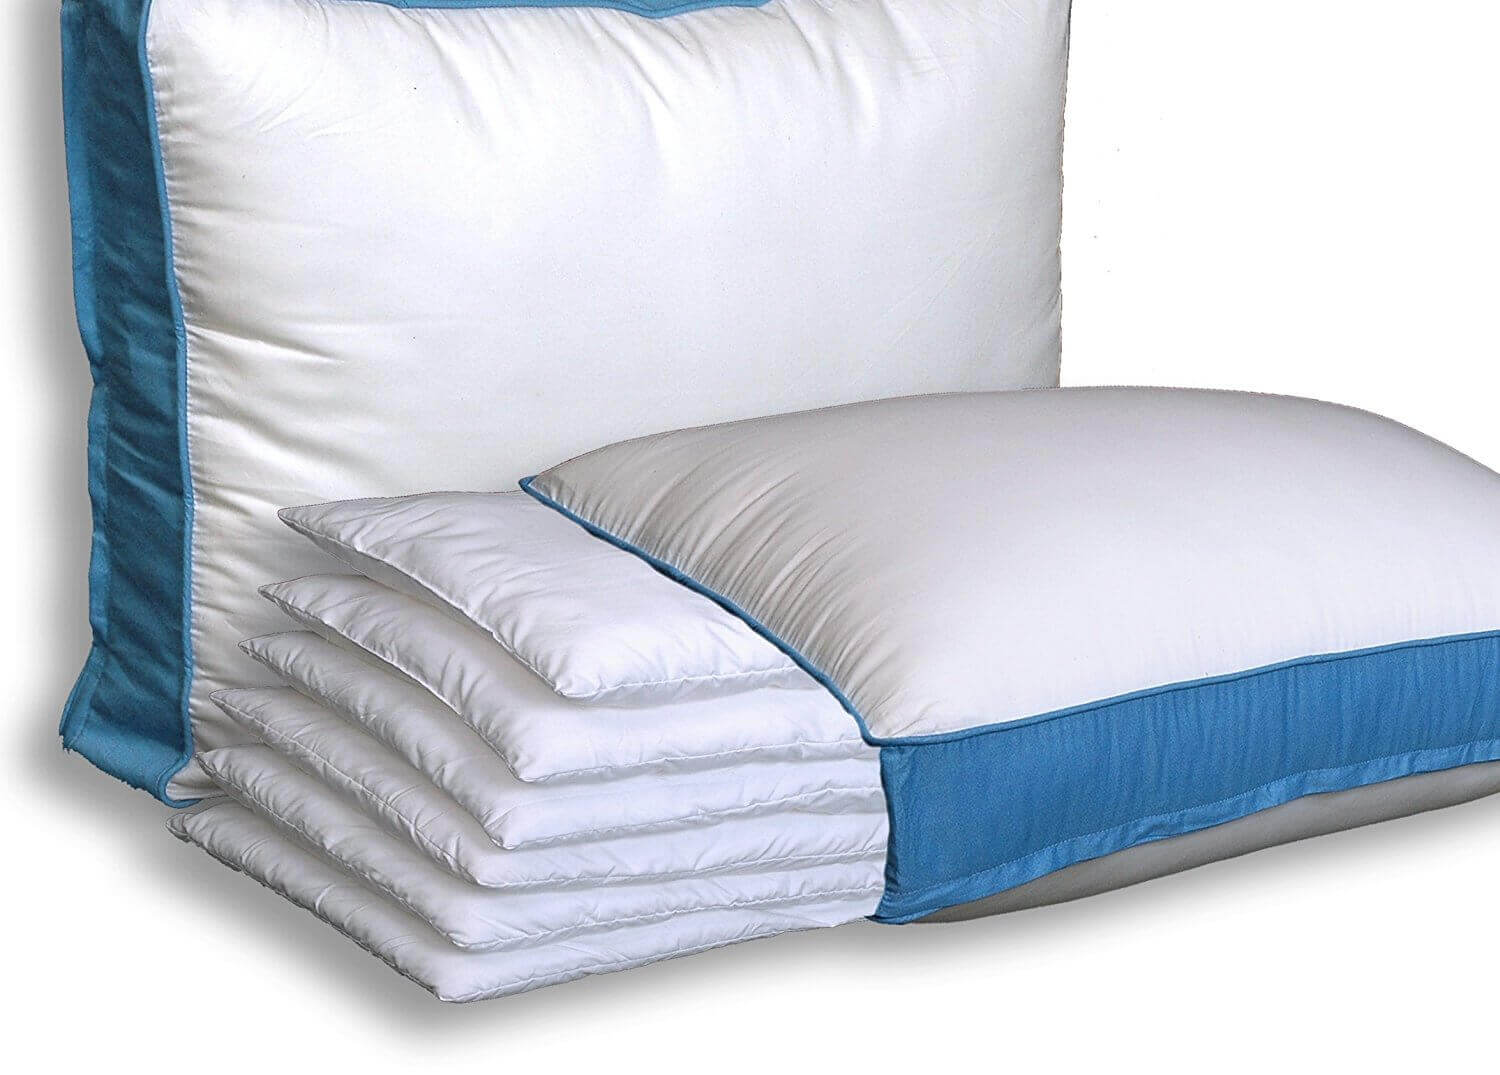 Pancake Pillow Review  Six Pillows in One  The Sleep Sherpa